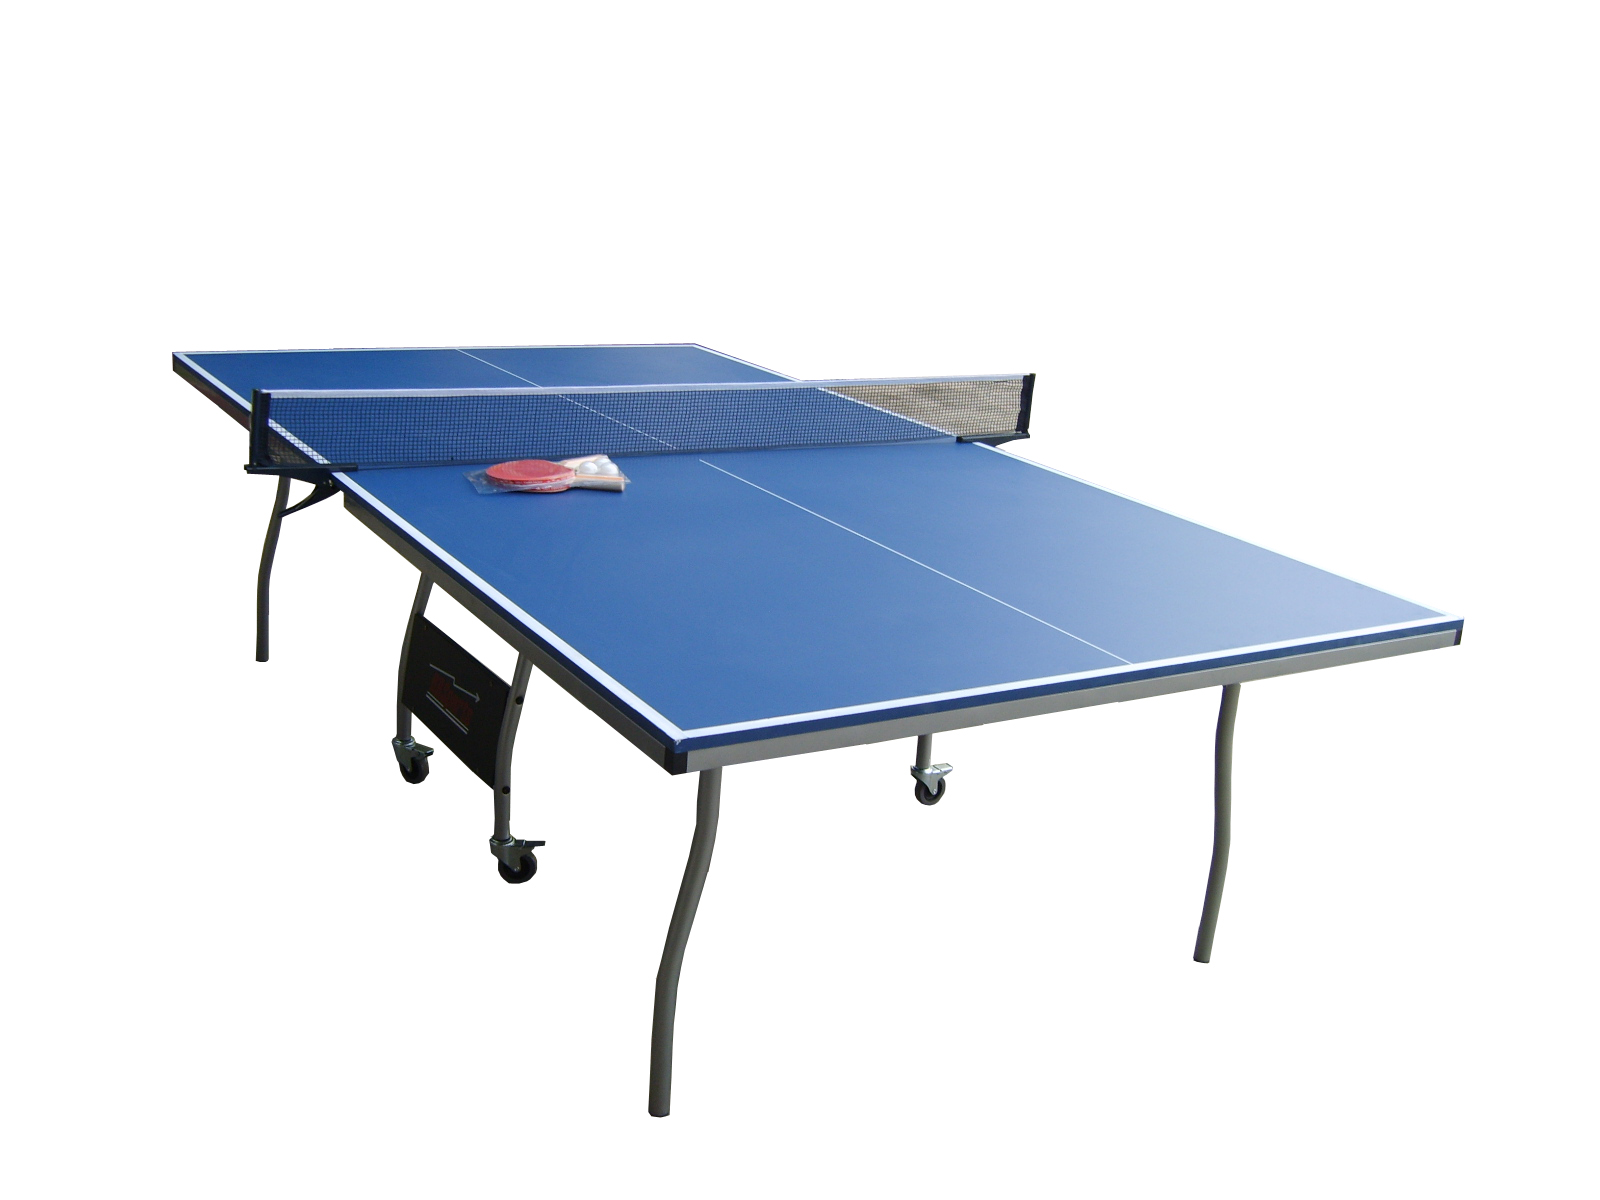 term paper on game of table tennis The history of table tennis  but the first action game of tennis on a table was in 1890 for more information, see my article - who invented table tennis.